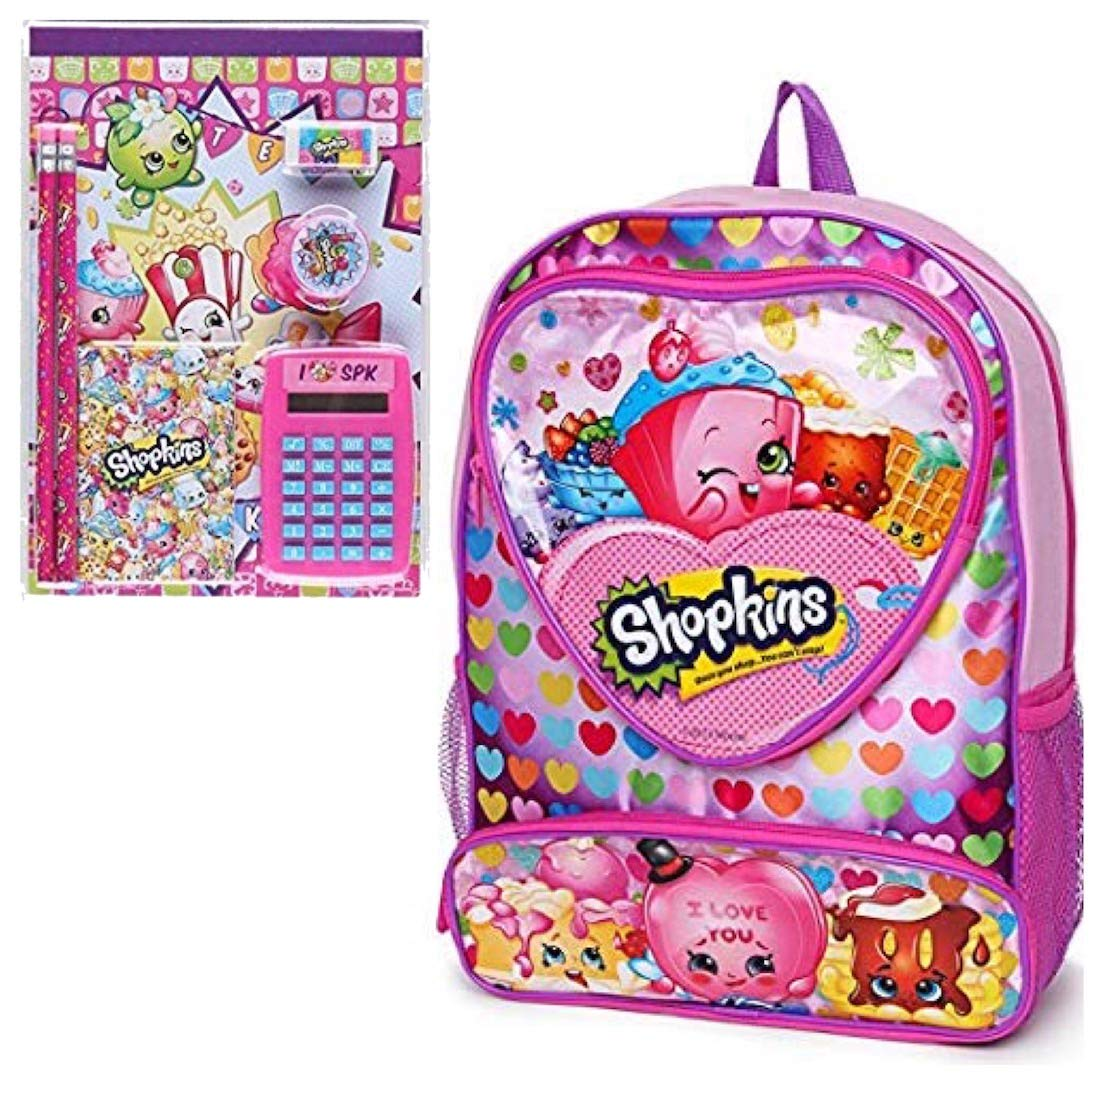 fca7bd6501f1 Shopkins Kids School Set - Backpack and 7 Piece School Supply Set